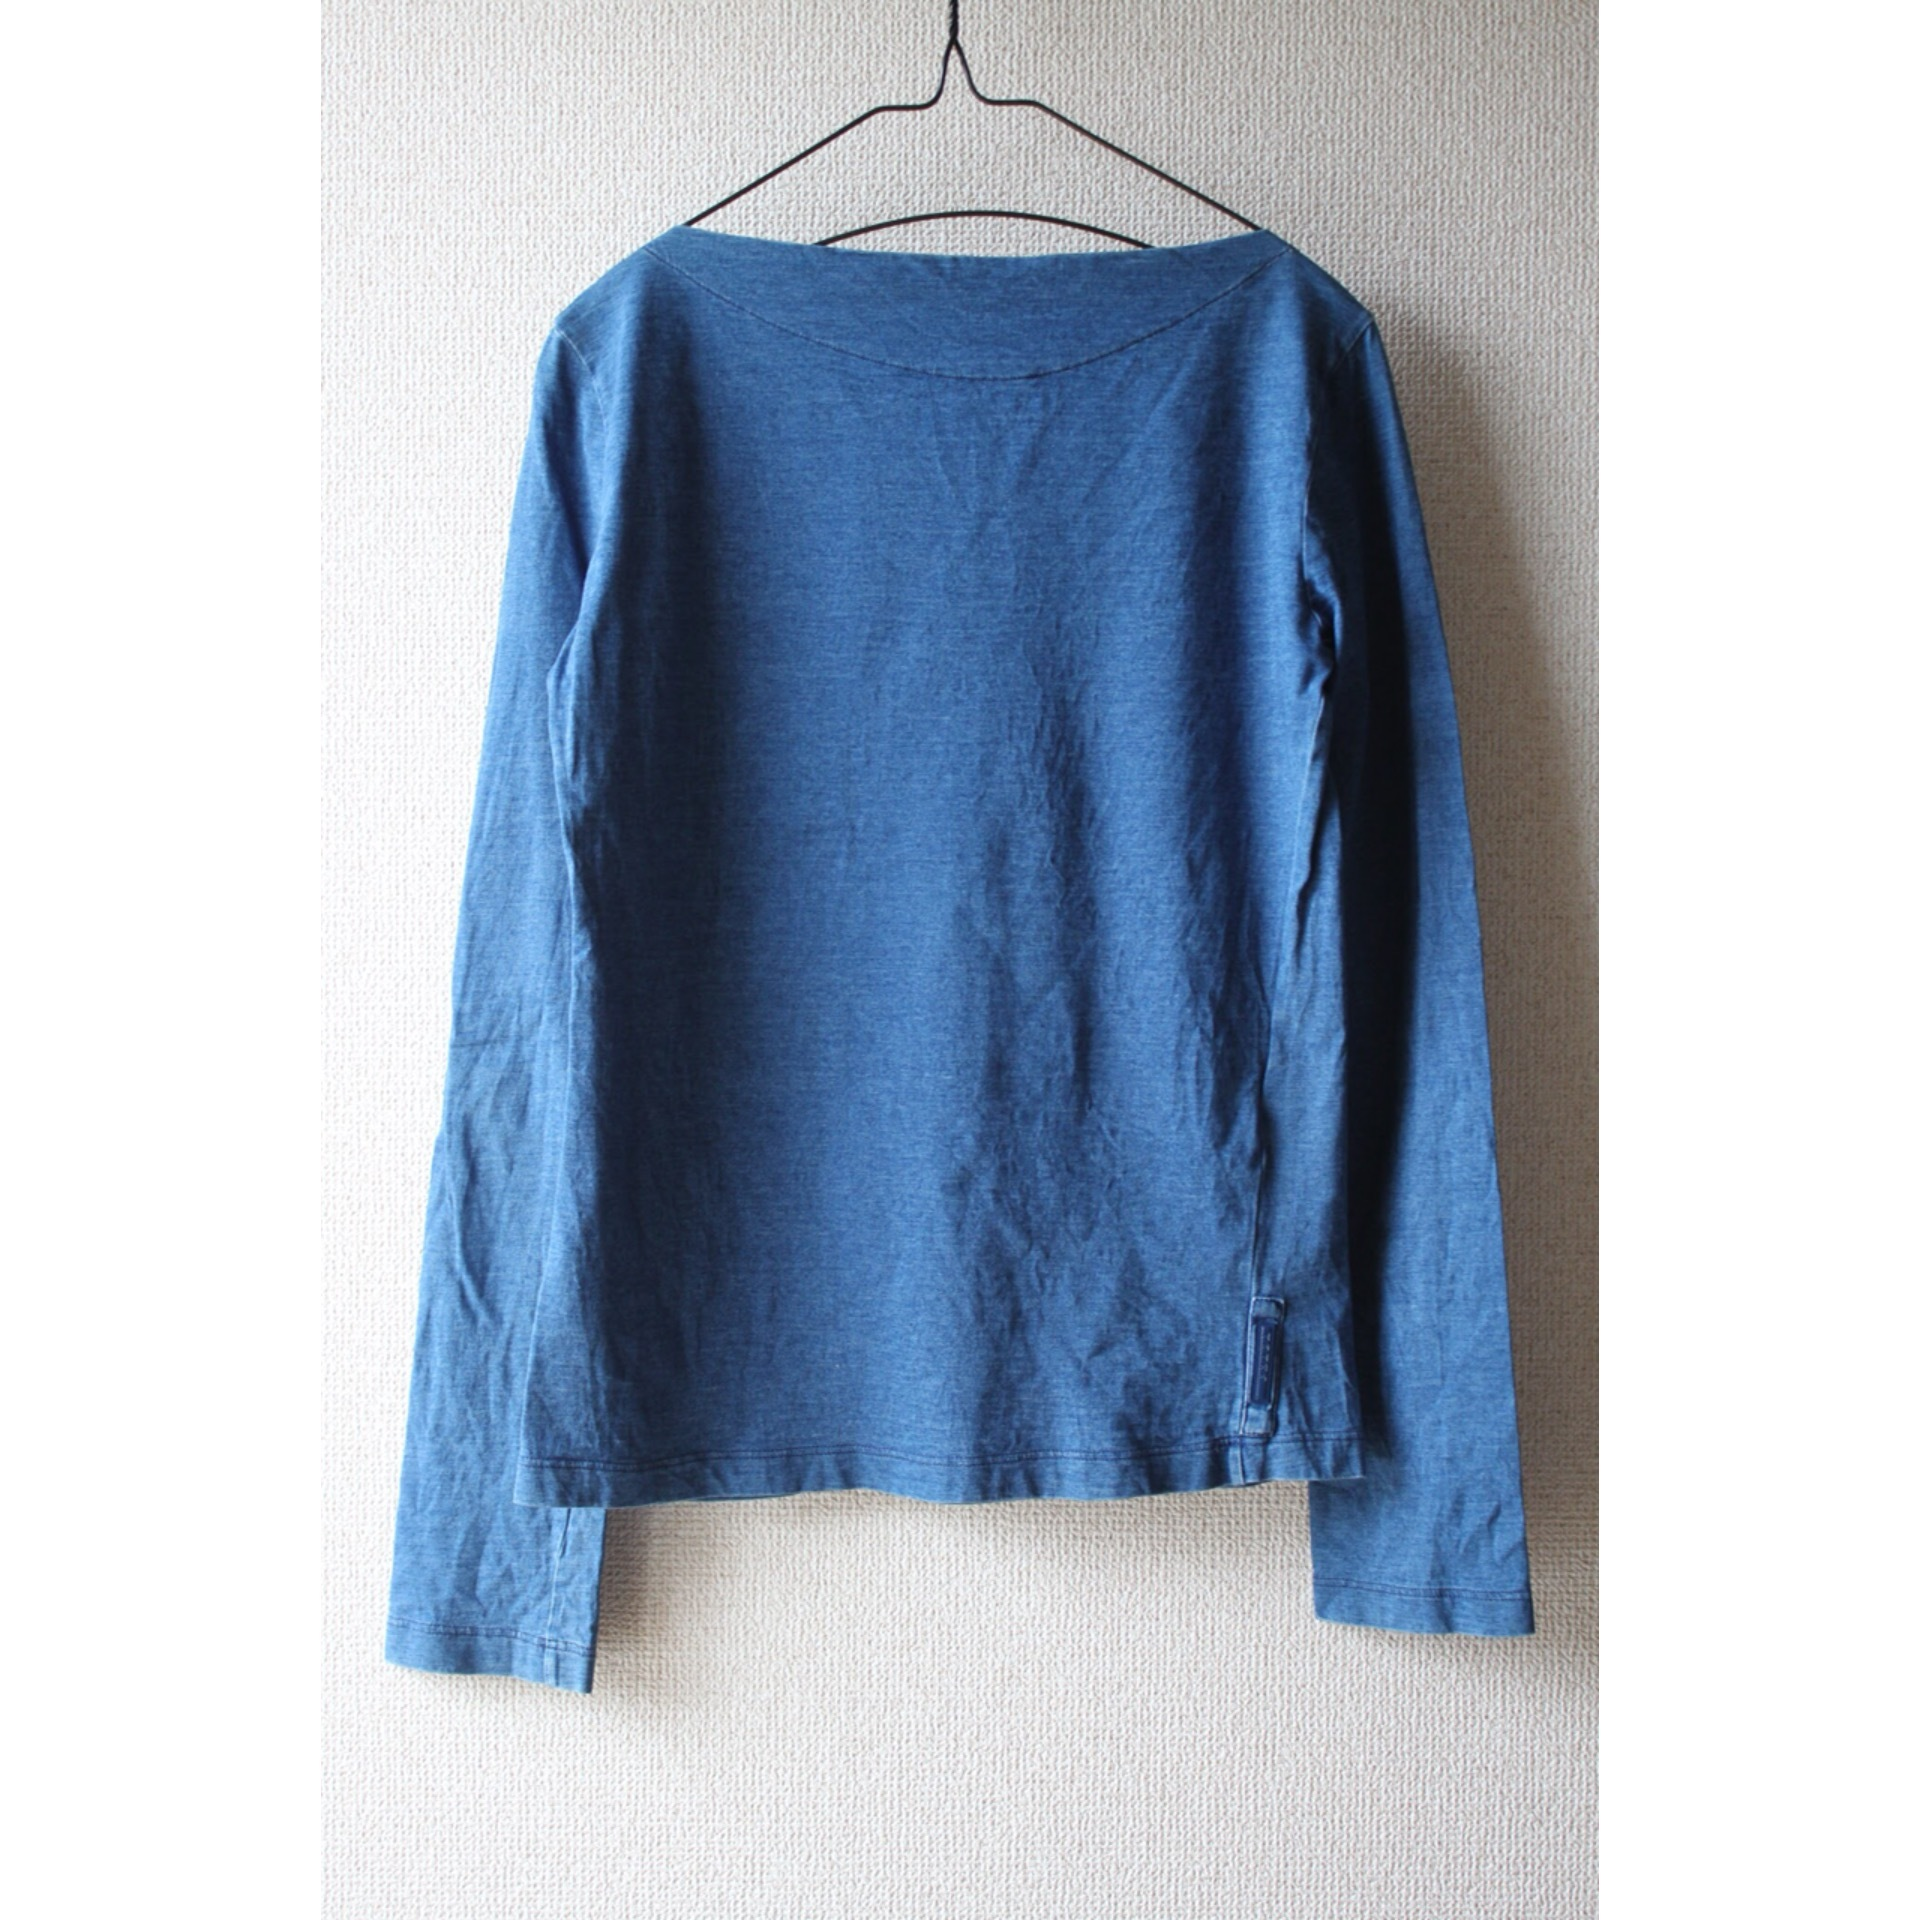 00s PRADA indigo long sleeve shirt